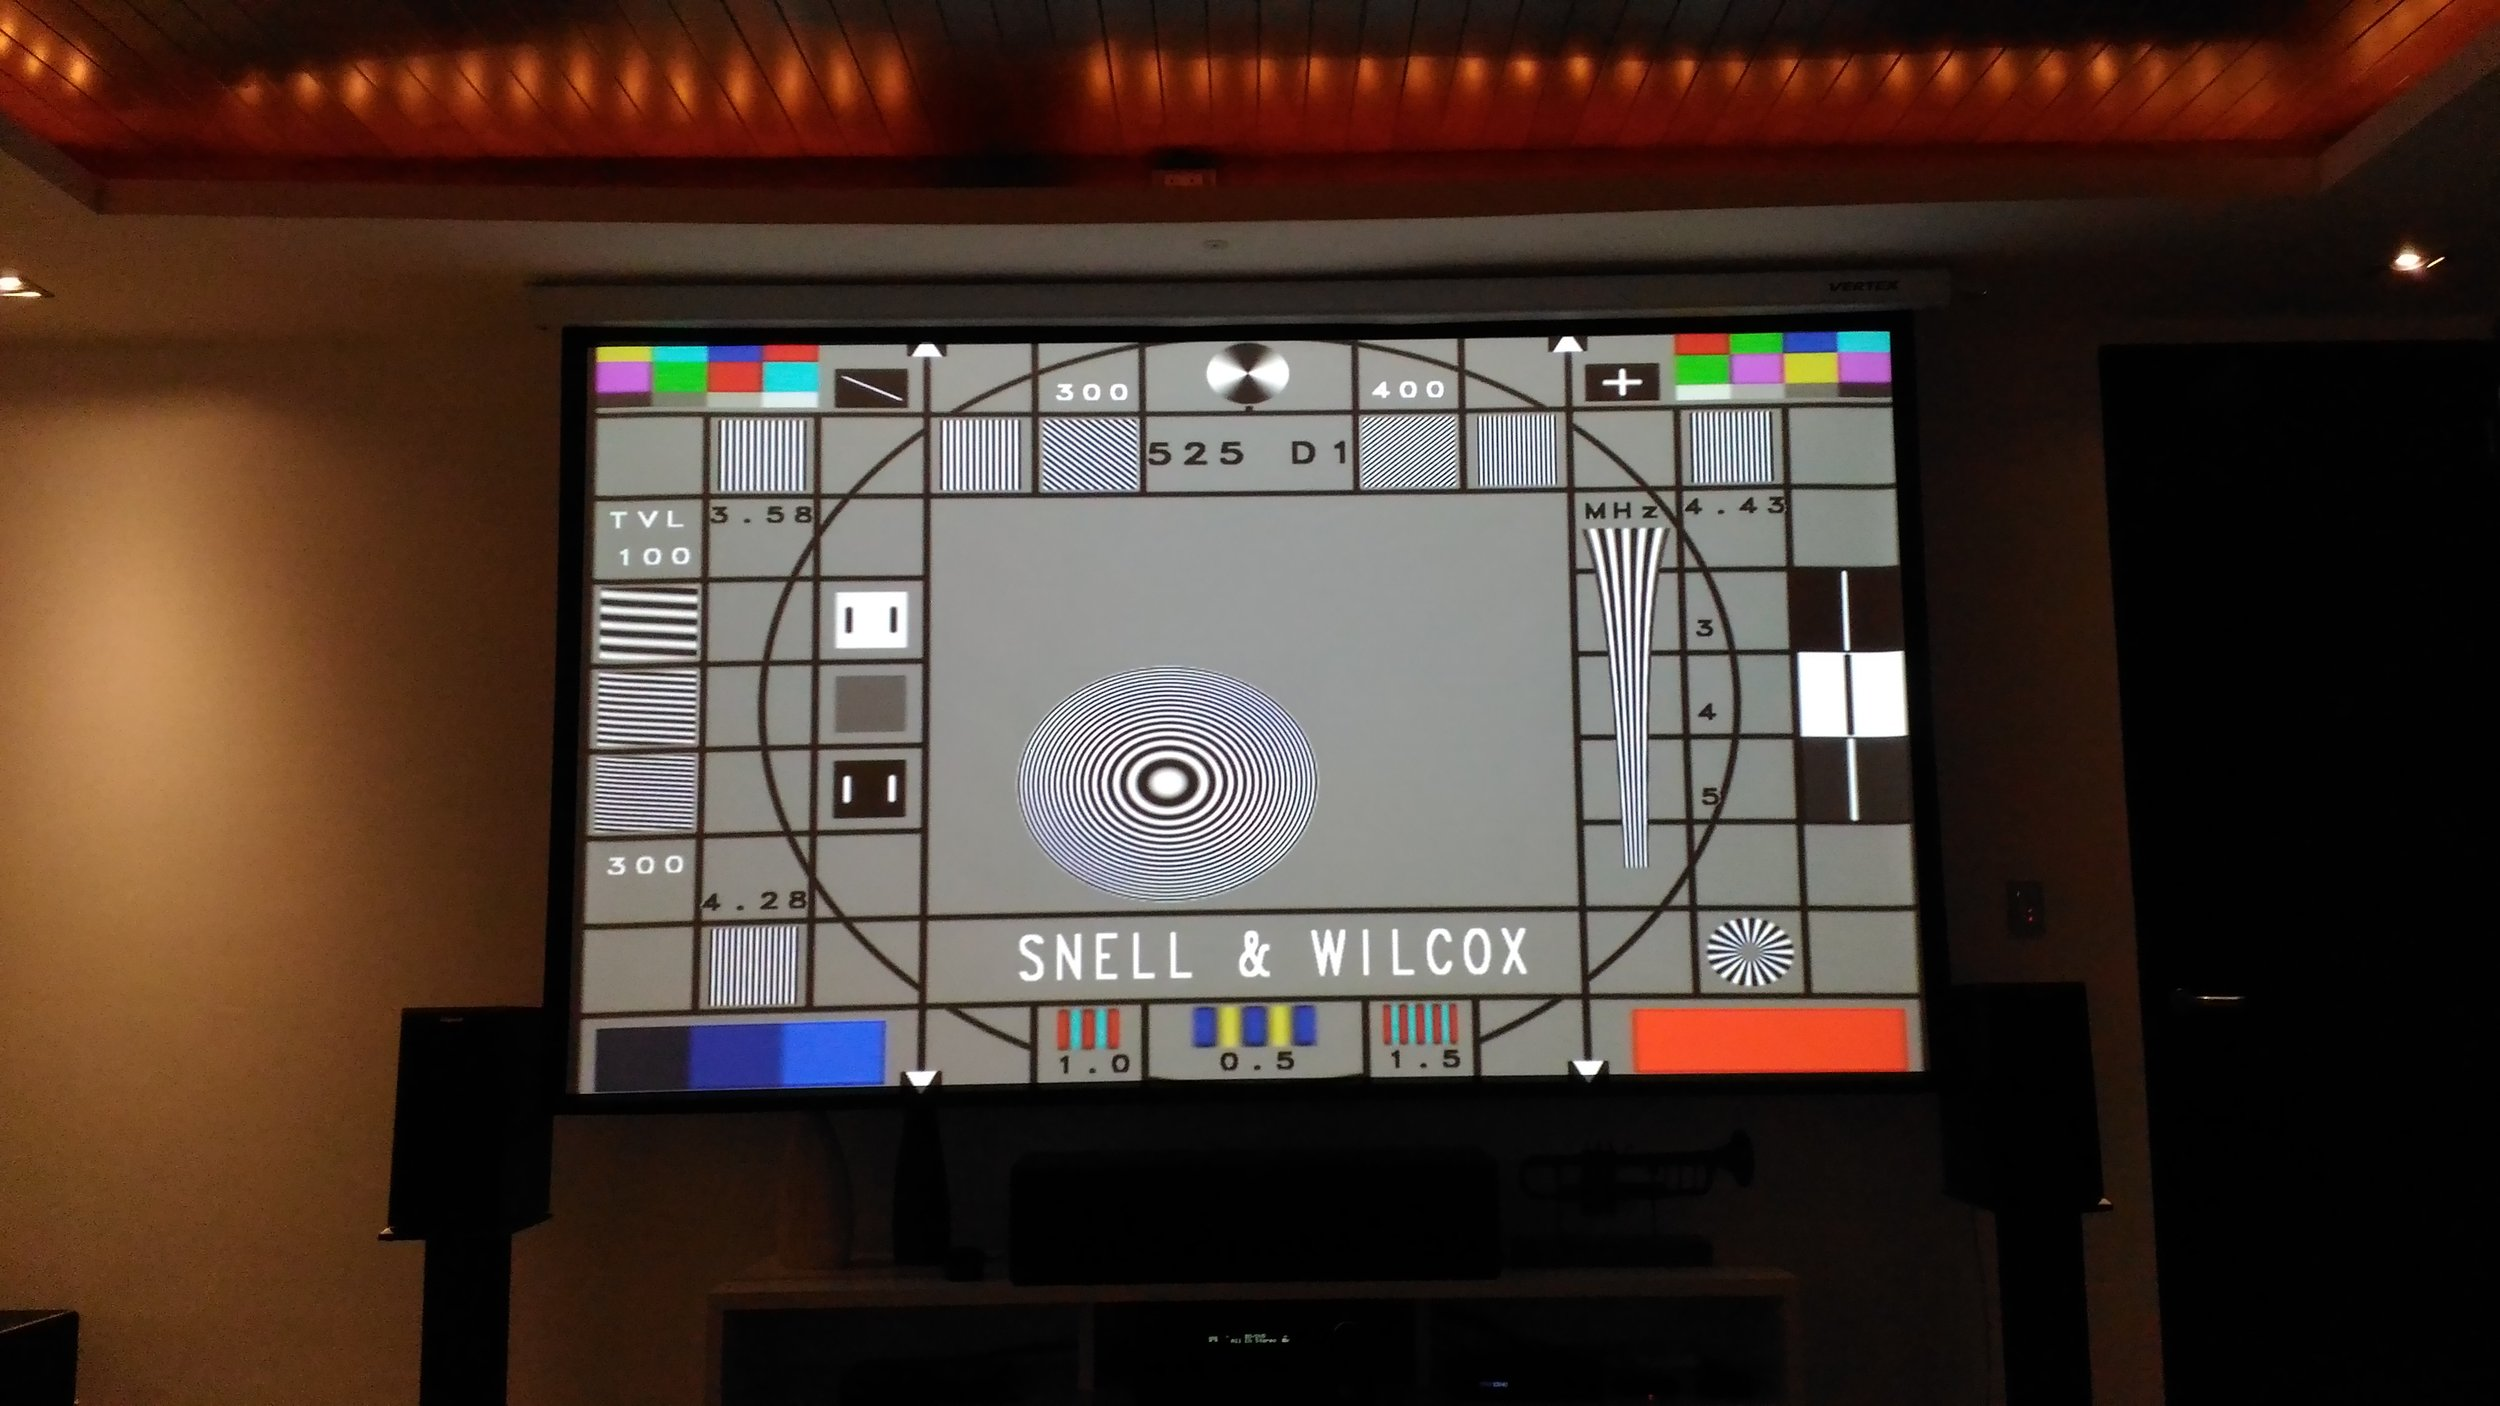 Home Cinema test pattern